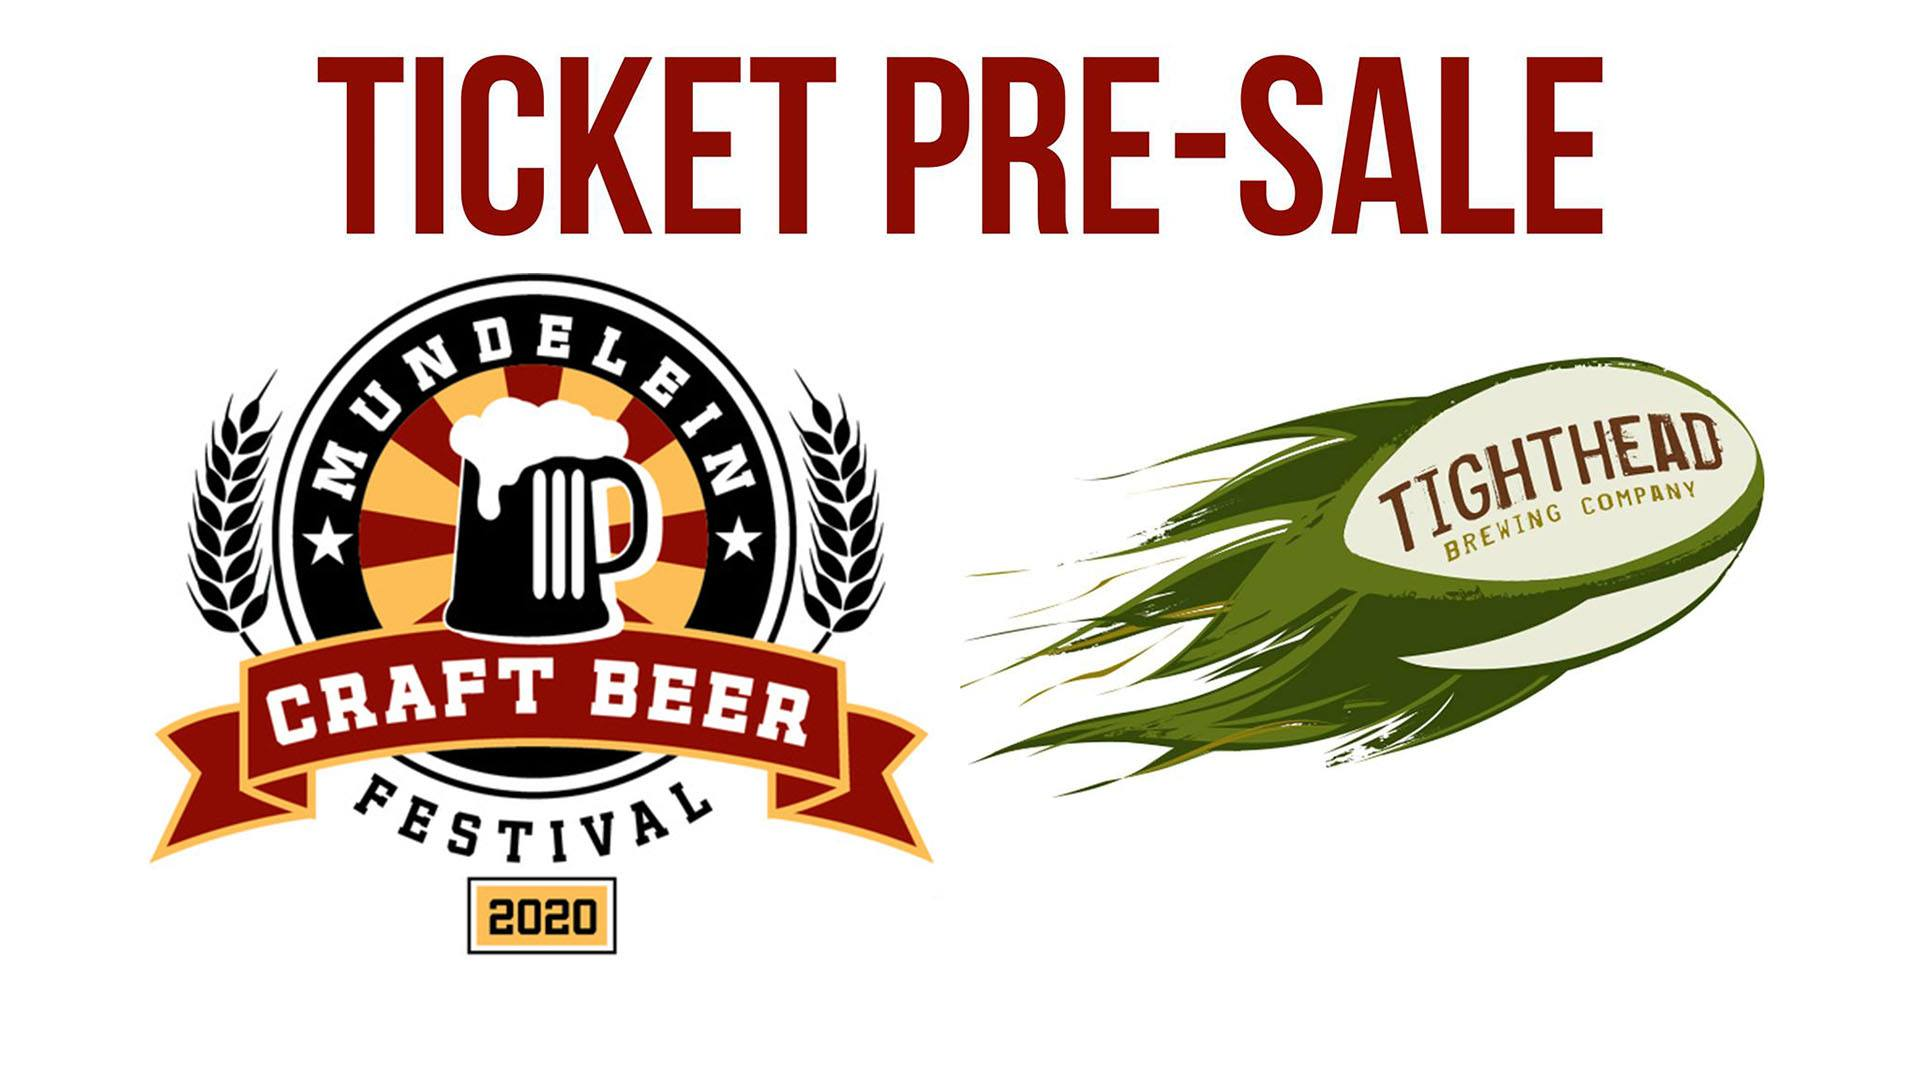 Mundelein Craft Beer Fest Pre-Sale at Tighthead Brewing Company